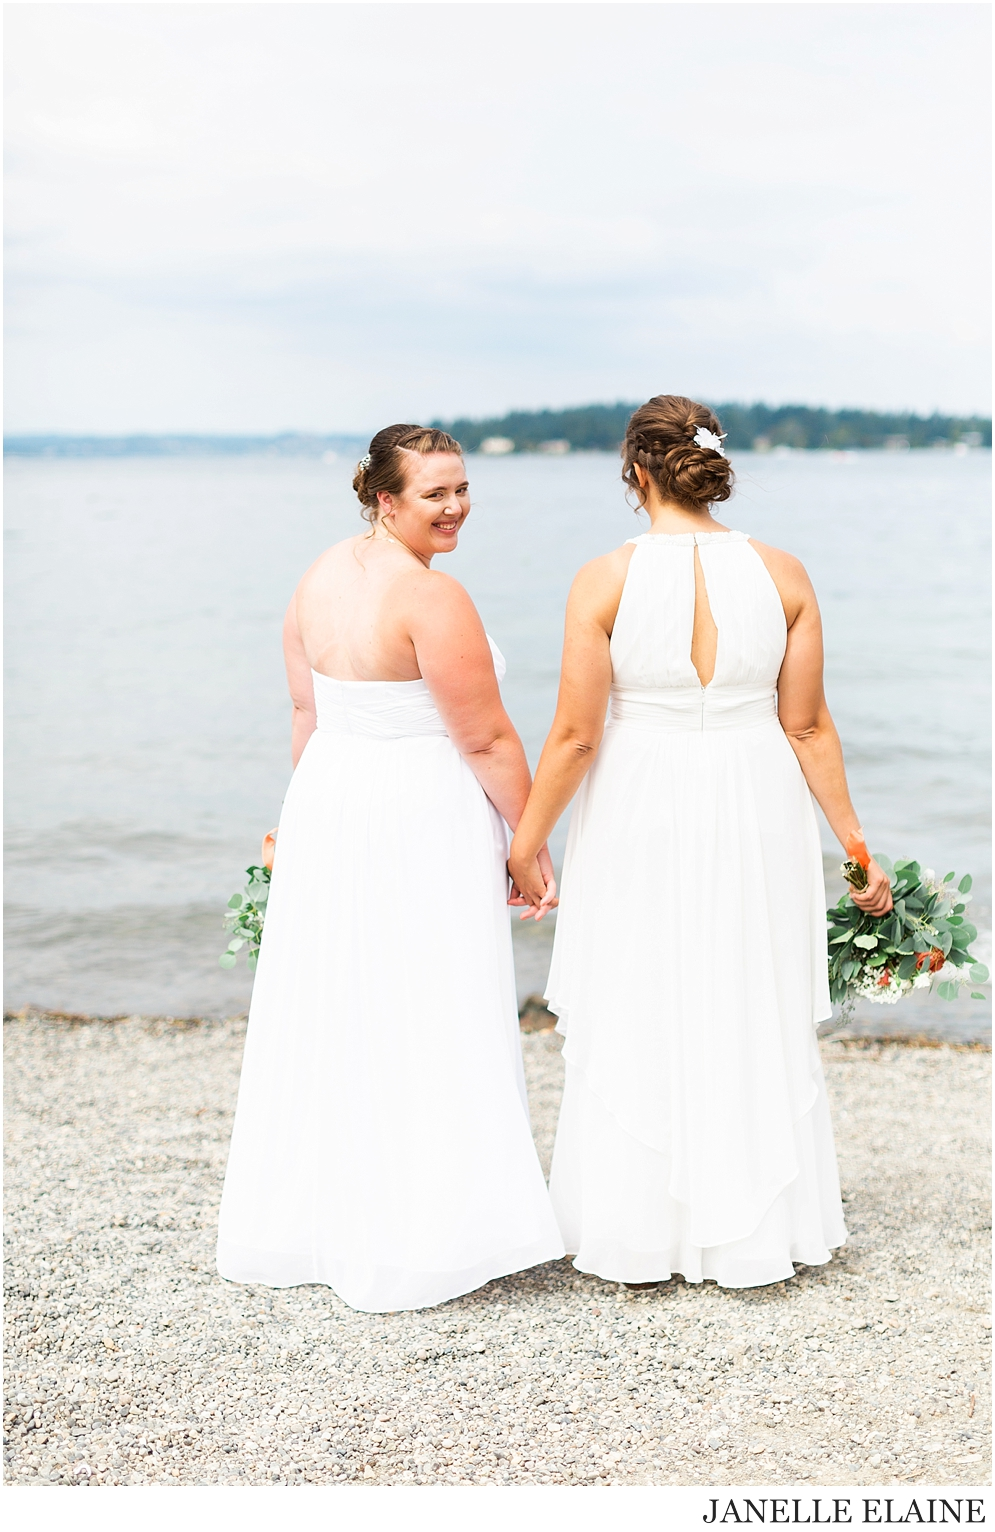 liz and christina lanning-first look and portraits-luther burbank park-janelle elaine photography-130.jpg